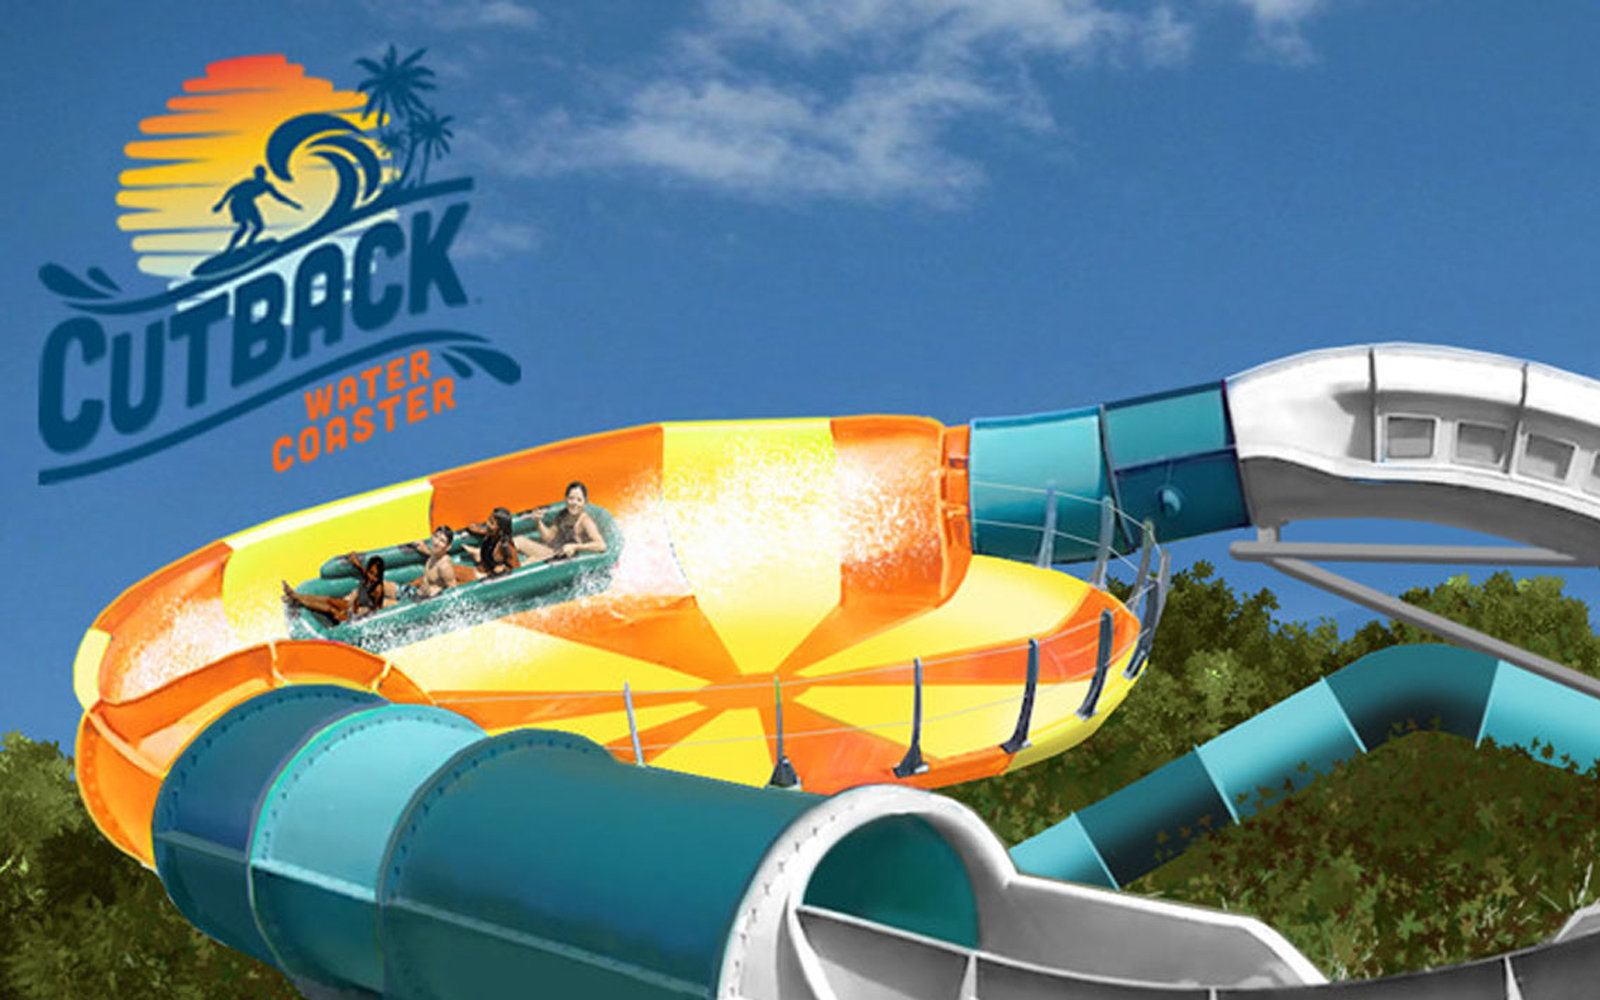 Cutback water coaster coming to Water Country USA